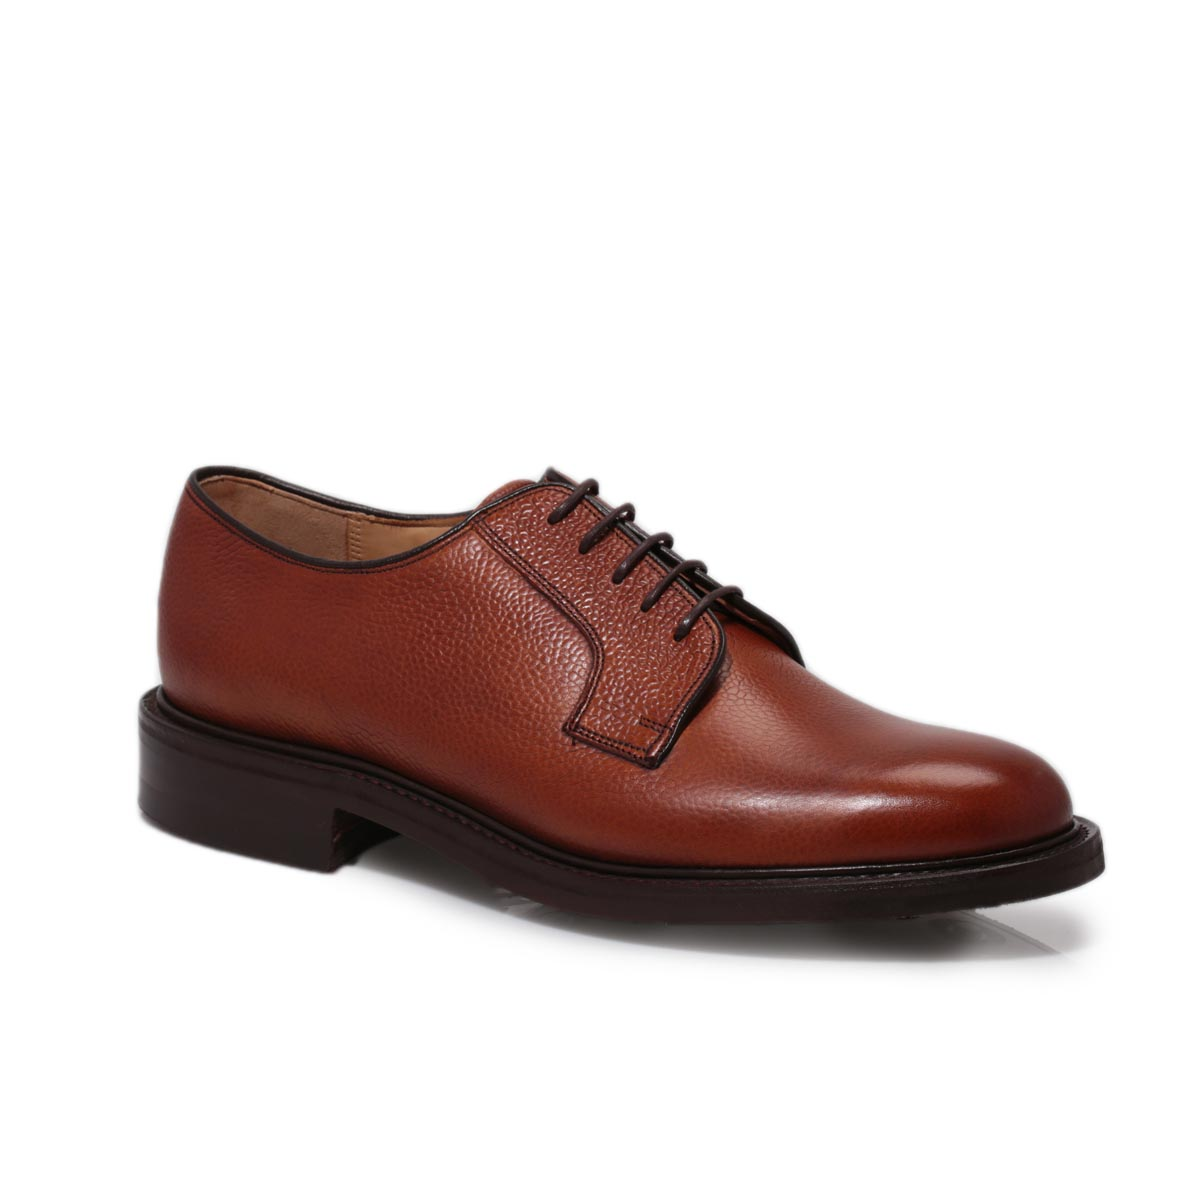 Gorgeous brown smart shoes, from Next. Only worn once for a wedding. Excellent condition. From a smoke free, pet free home. See my other listings. Boys Smart Clarks Brown Shoes Size 9 F Fitting. £ Buy it now. or Best Offer + £ P&P. In excellent condition size .